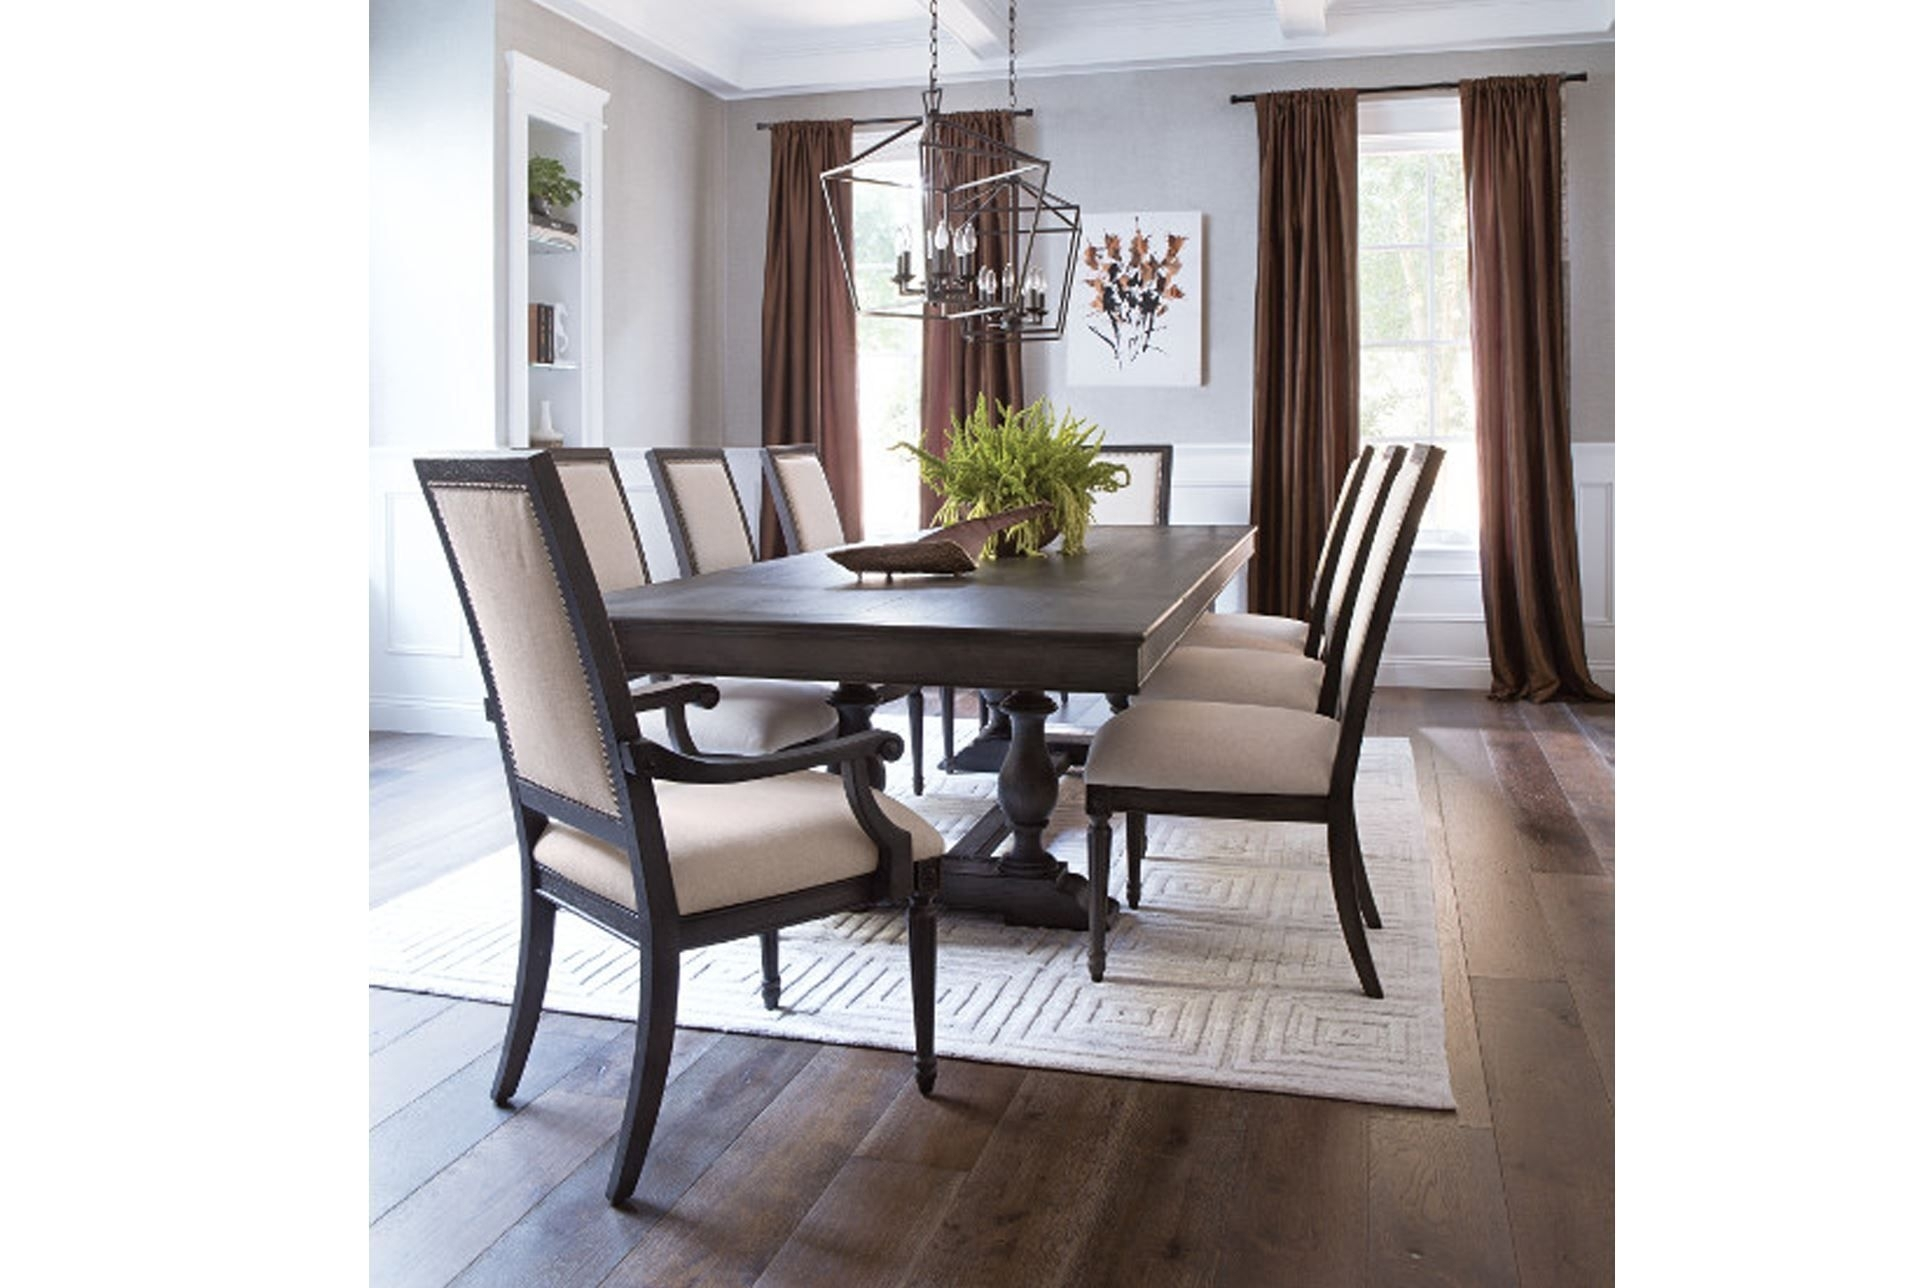 Chapleau 9 Piece Extension Dining Set, Off White Throughout Latest Chapleau Extension Dining Tables (View 8 of 20)